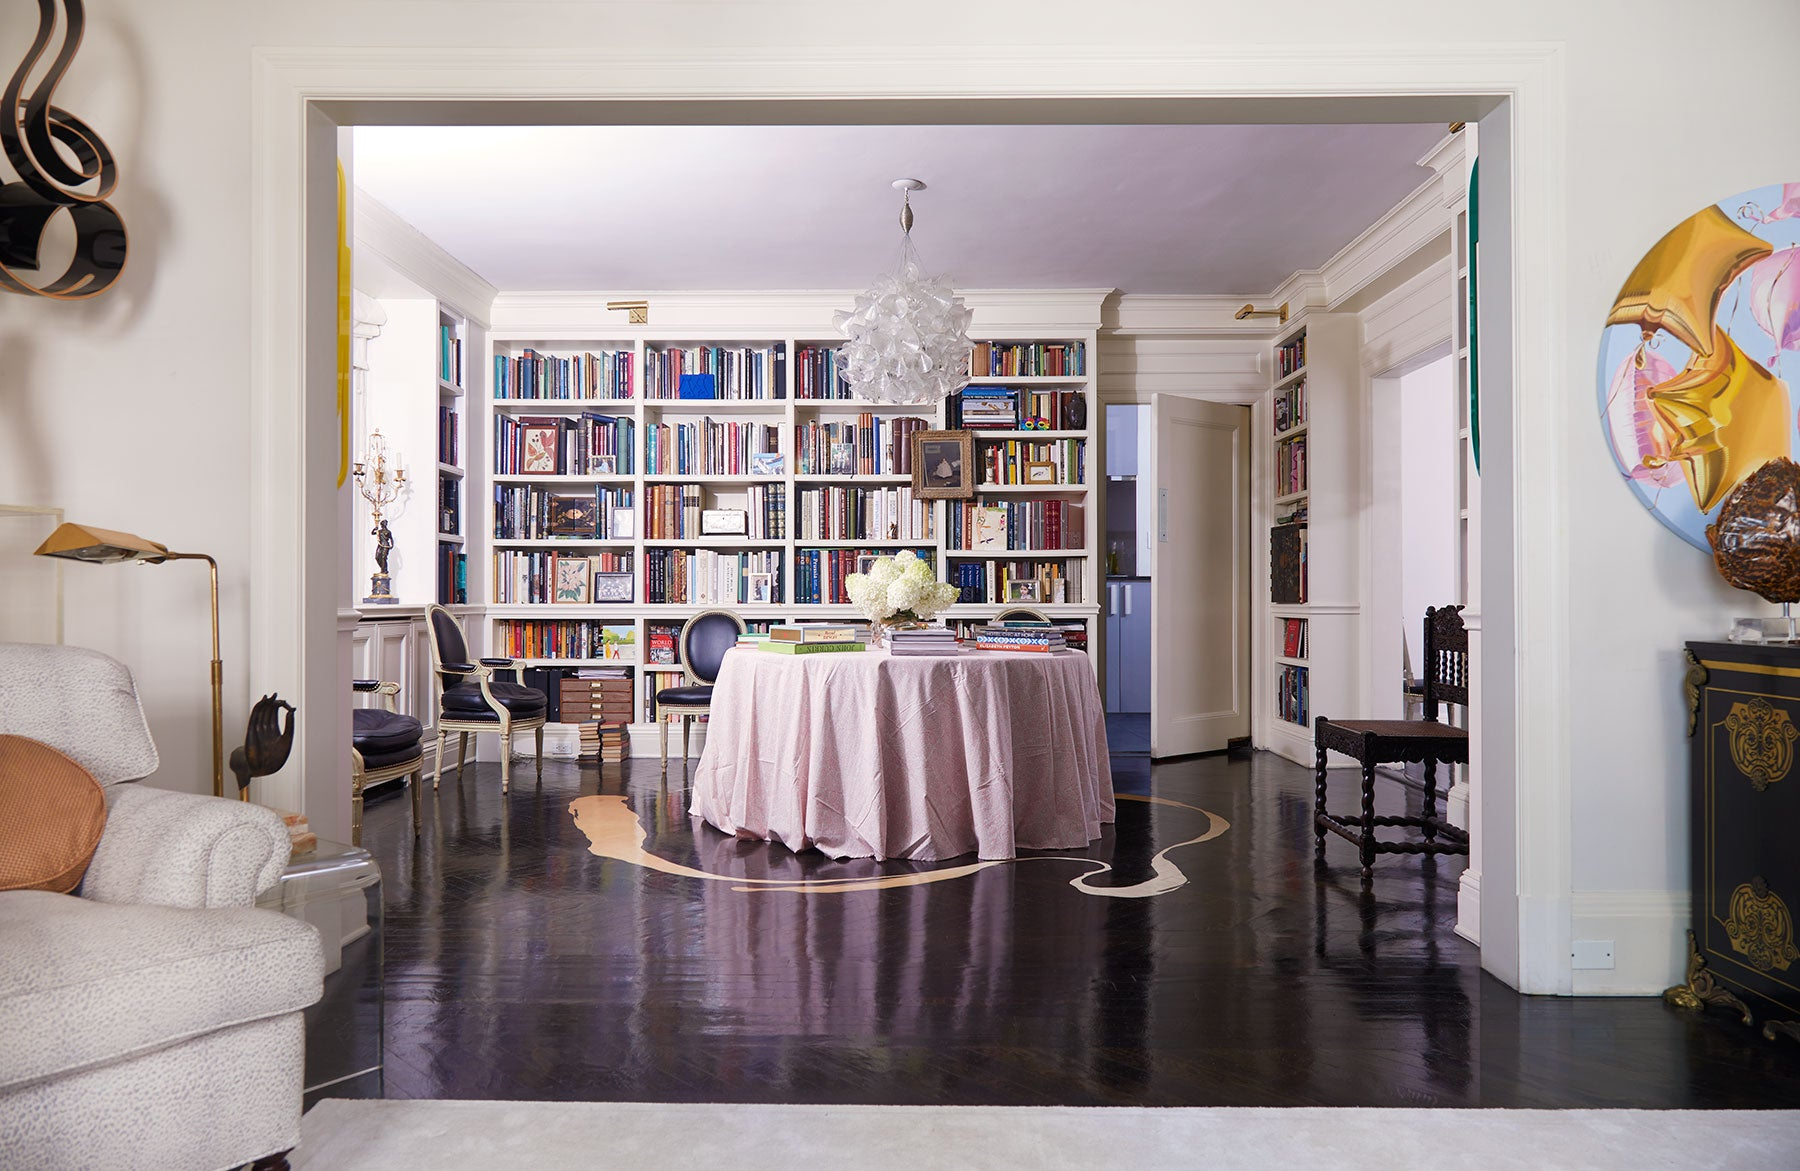 Blair Voltz Clarke and Alistair Clarke New York apartment library